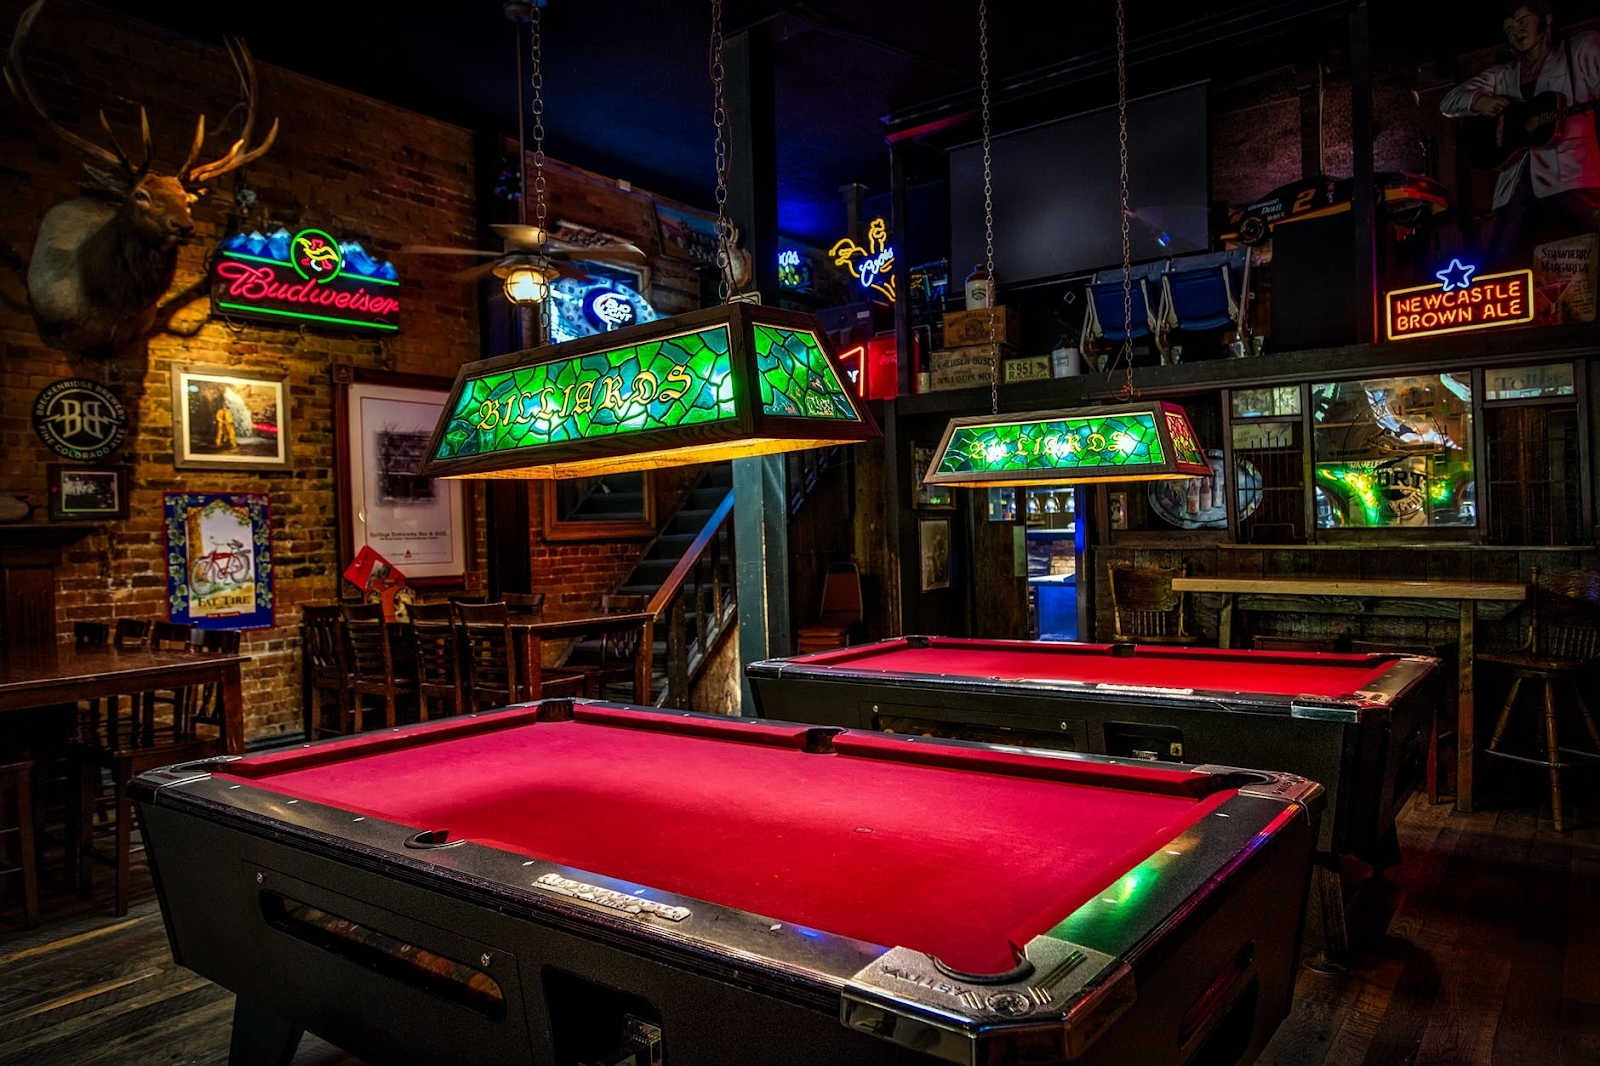 Useful Tips for Buying a Pool Table